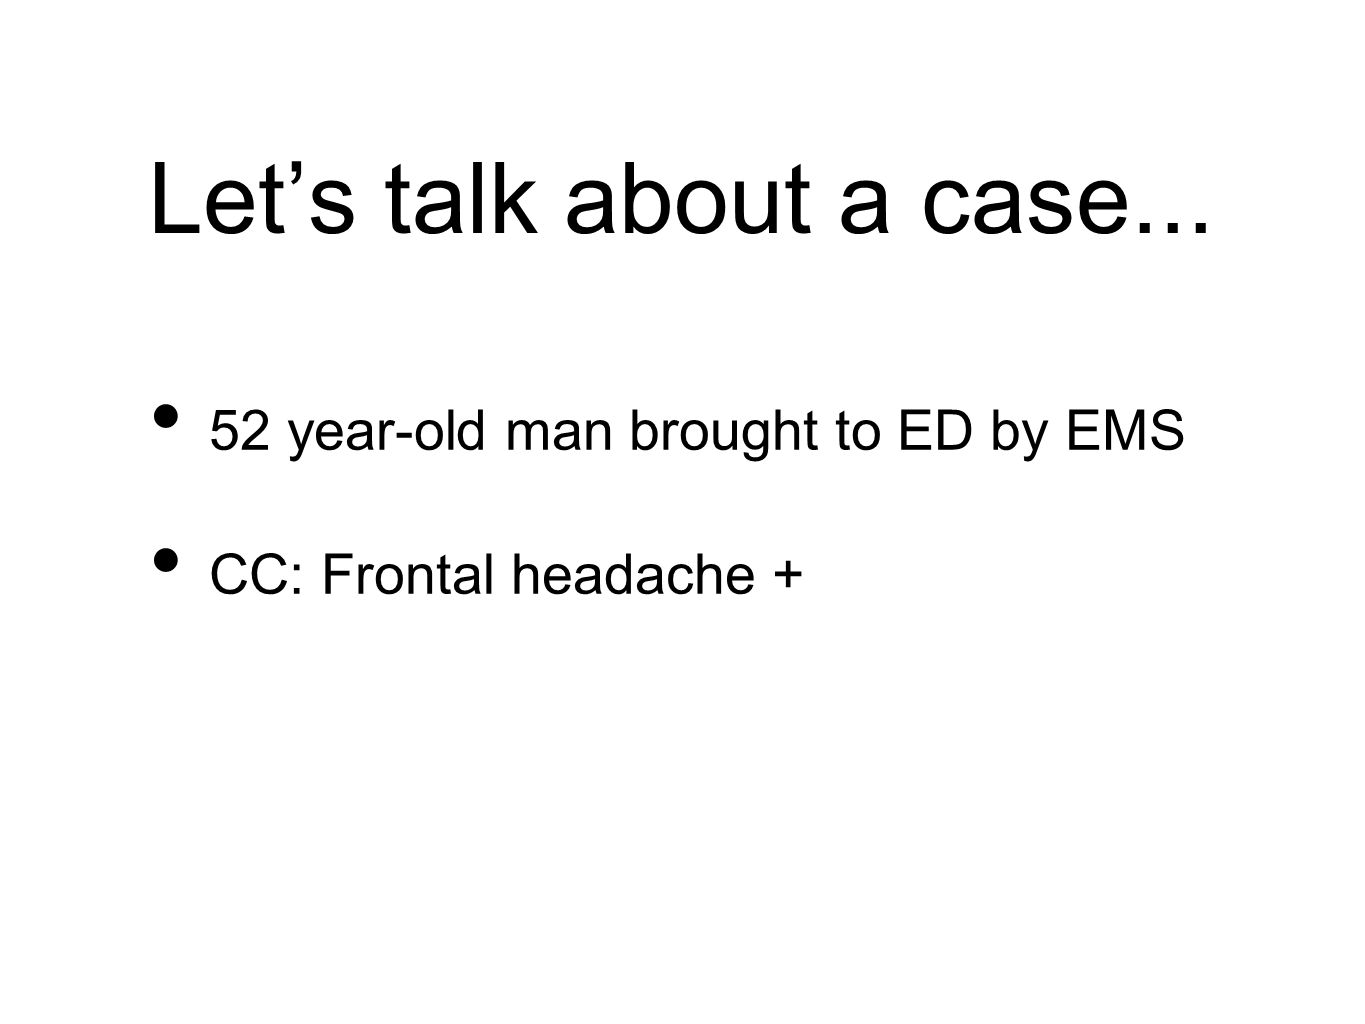 Let's talk about a case... 52 year-old man brought to ED by EMS CC: Frontal headache +